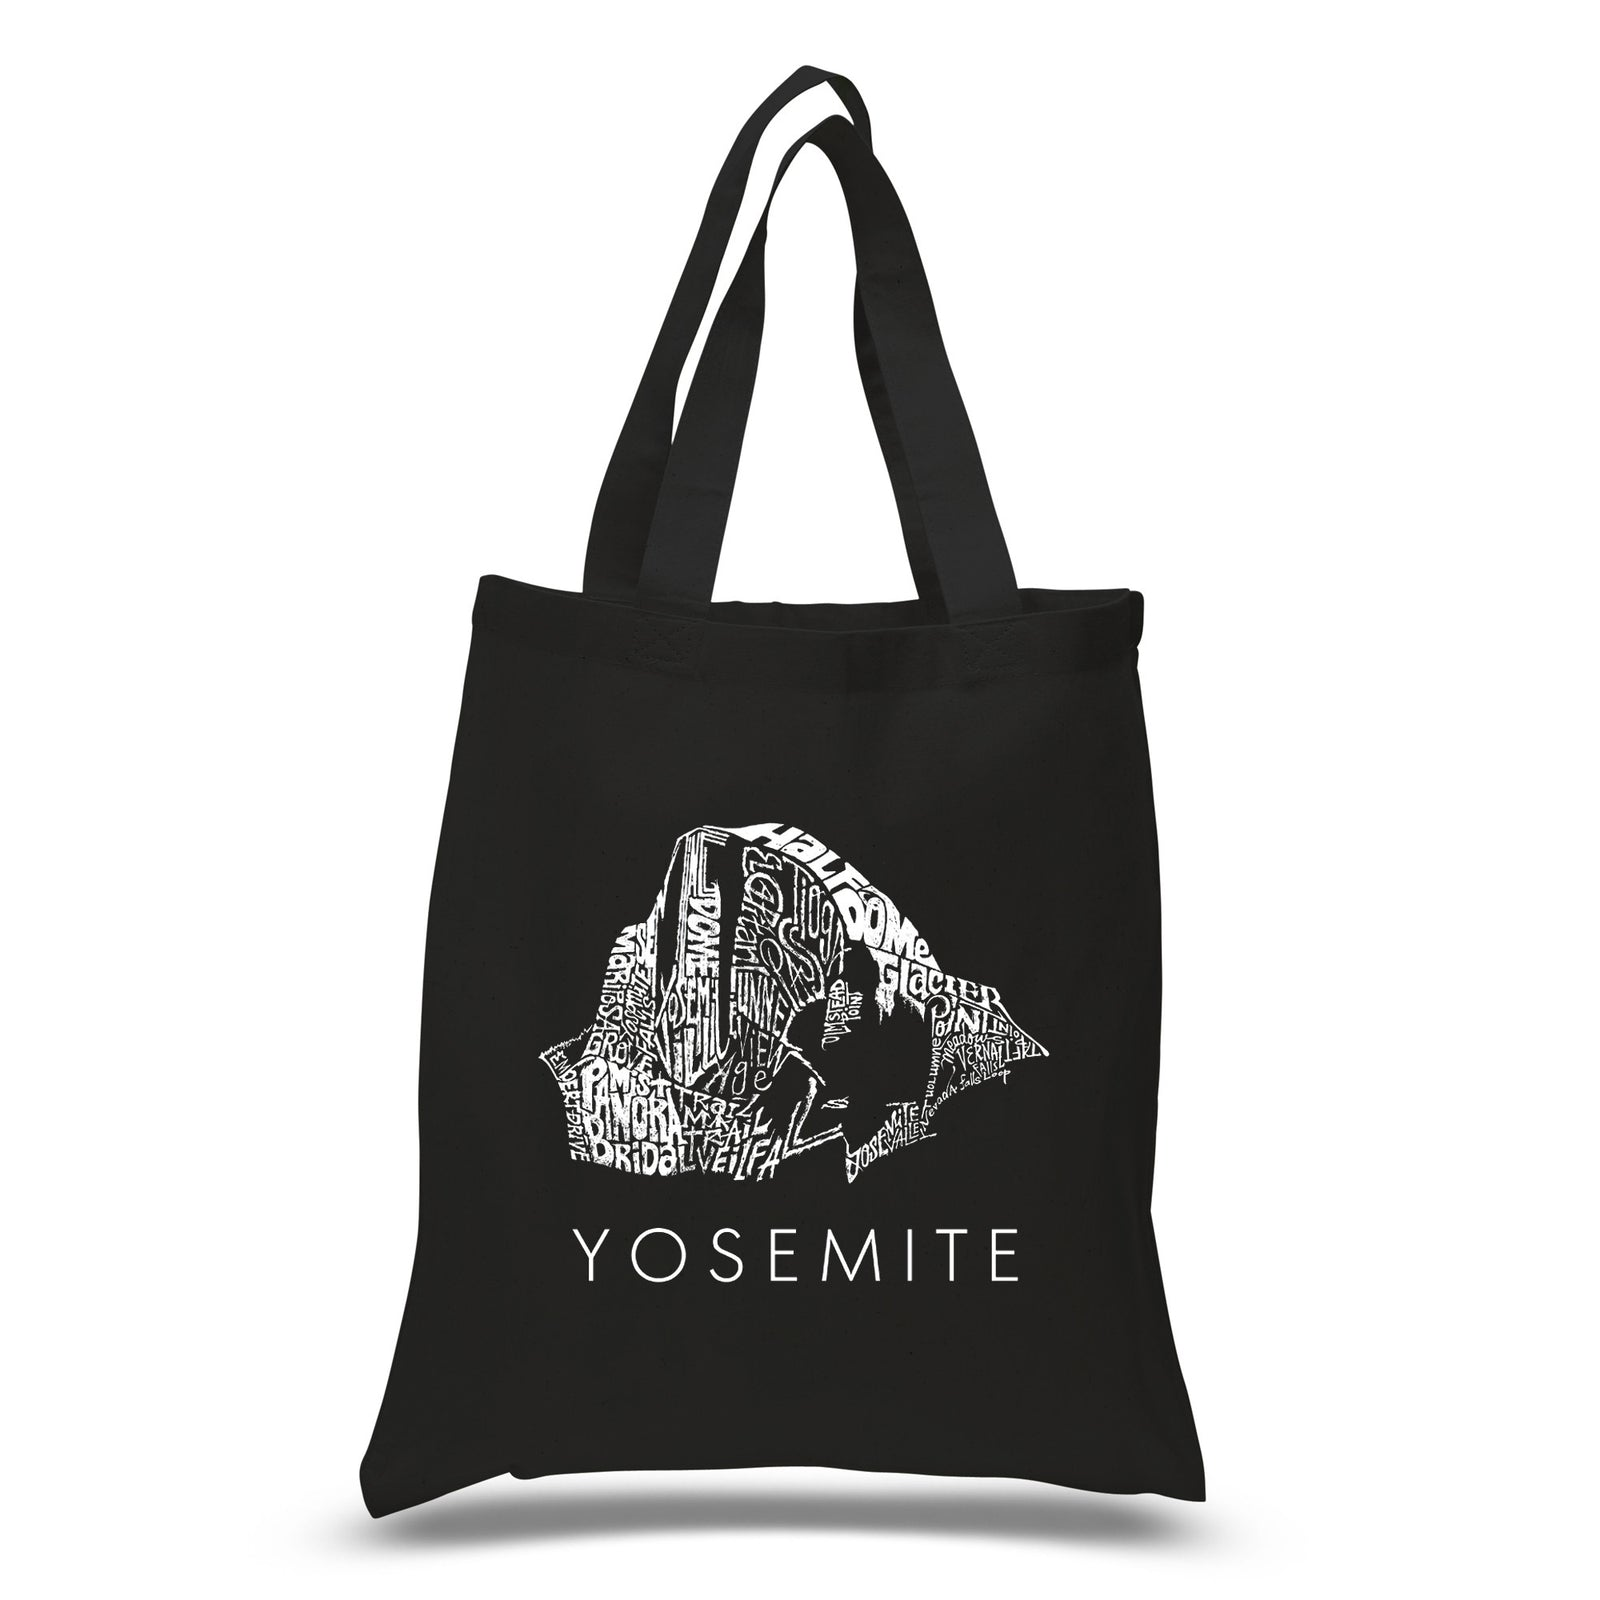 Los Angeles Pop Art Small Tote Bag - Yosemite